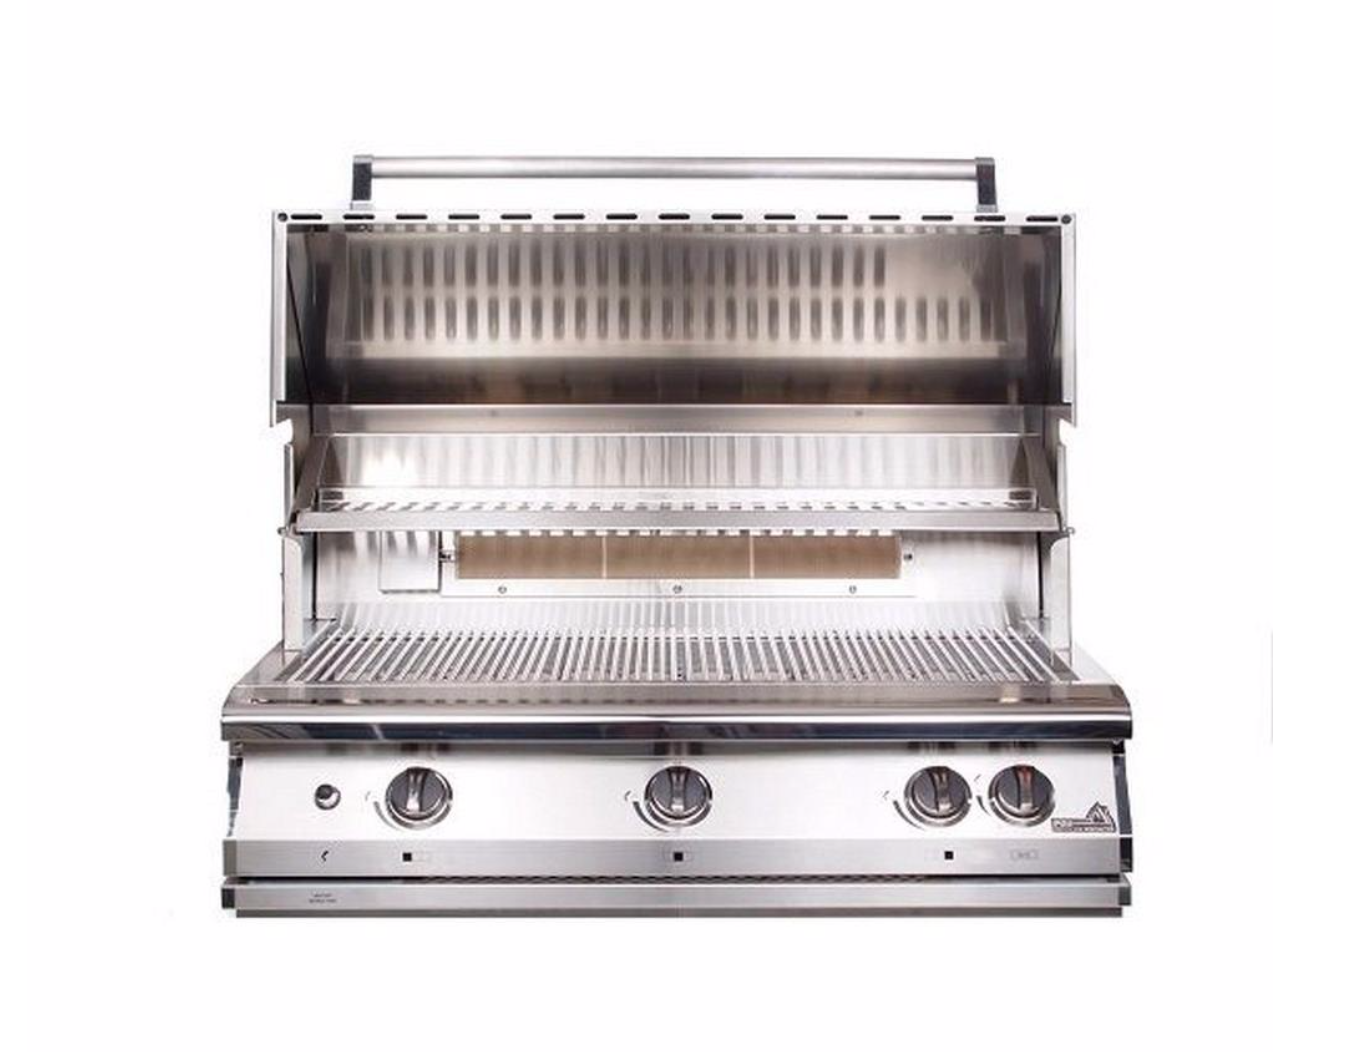 Pgs Grills S36r Legacy 39 Pacifica Gourmet Stainless Steel Grill Head With Infrared Rotisseri Gourmet Grilling Natural Gas Bbq Grill Gas Bbq